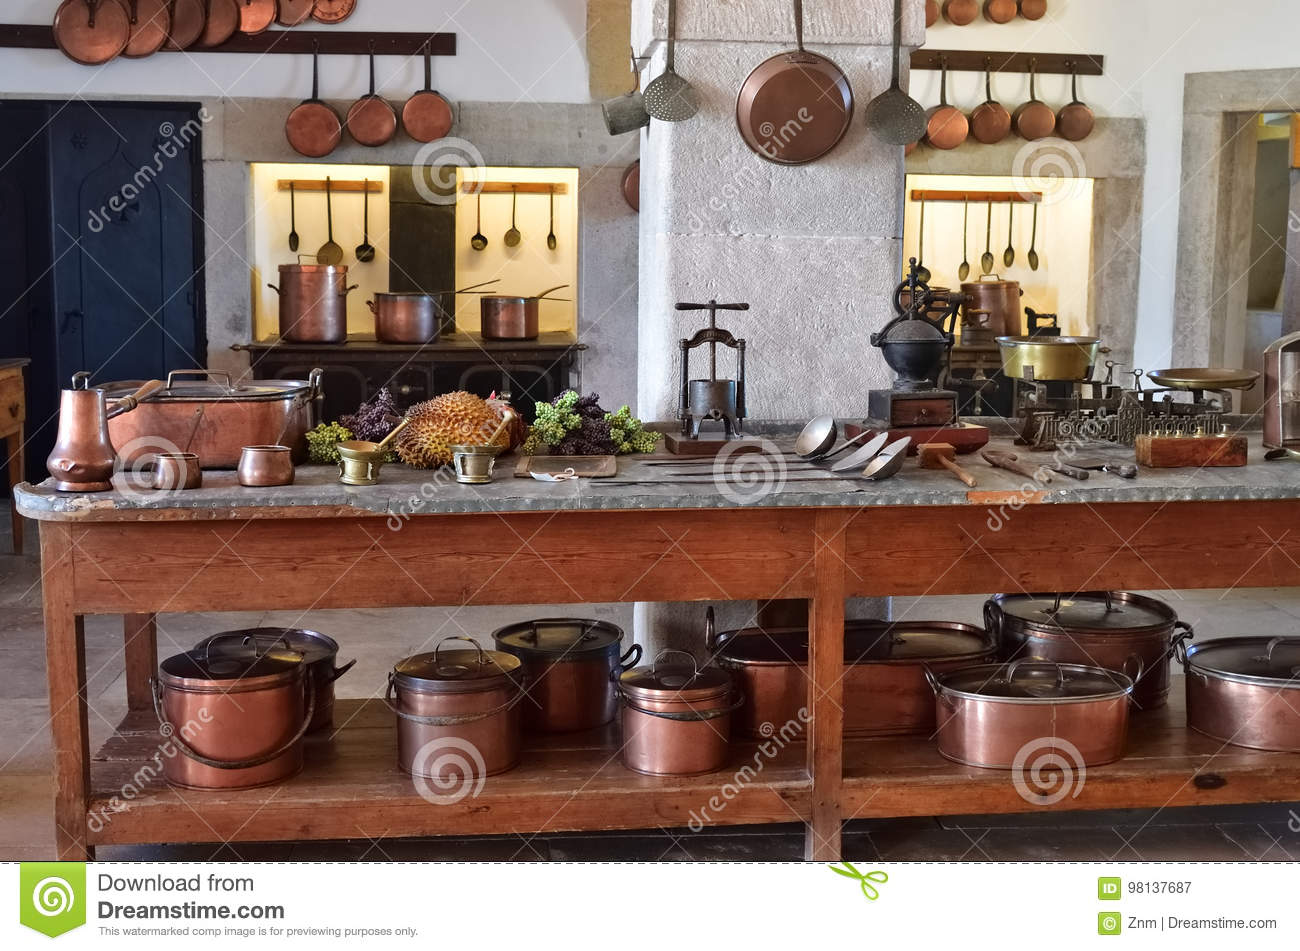 Kitchen interior in the Pena Palace in Sintra, Portugal